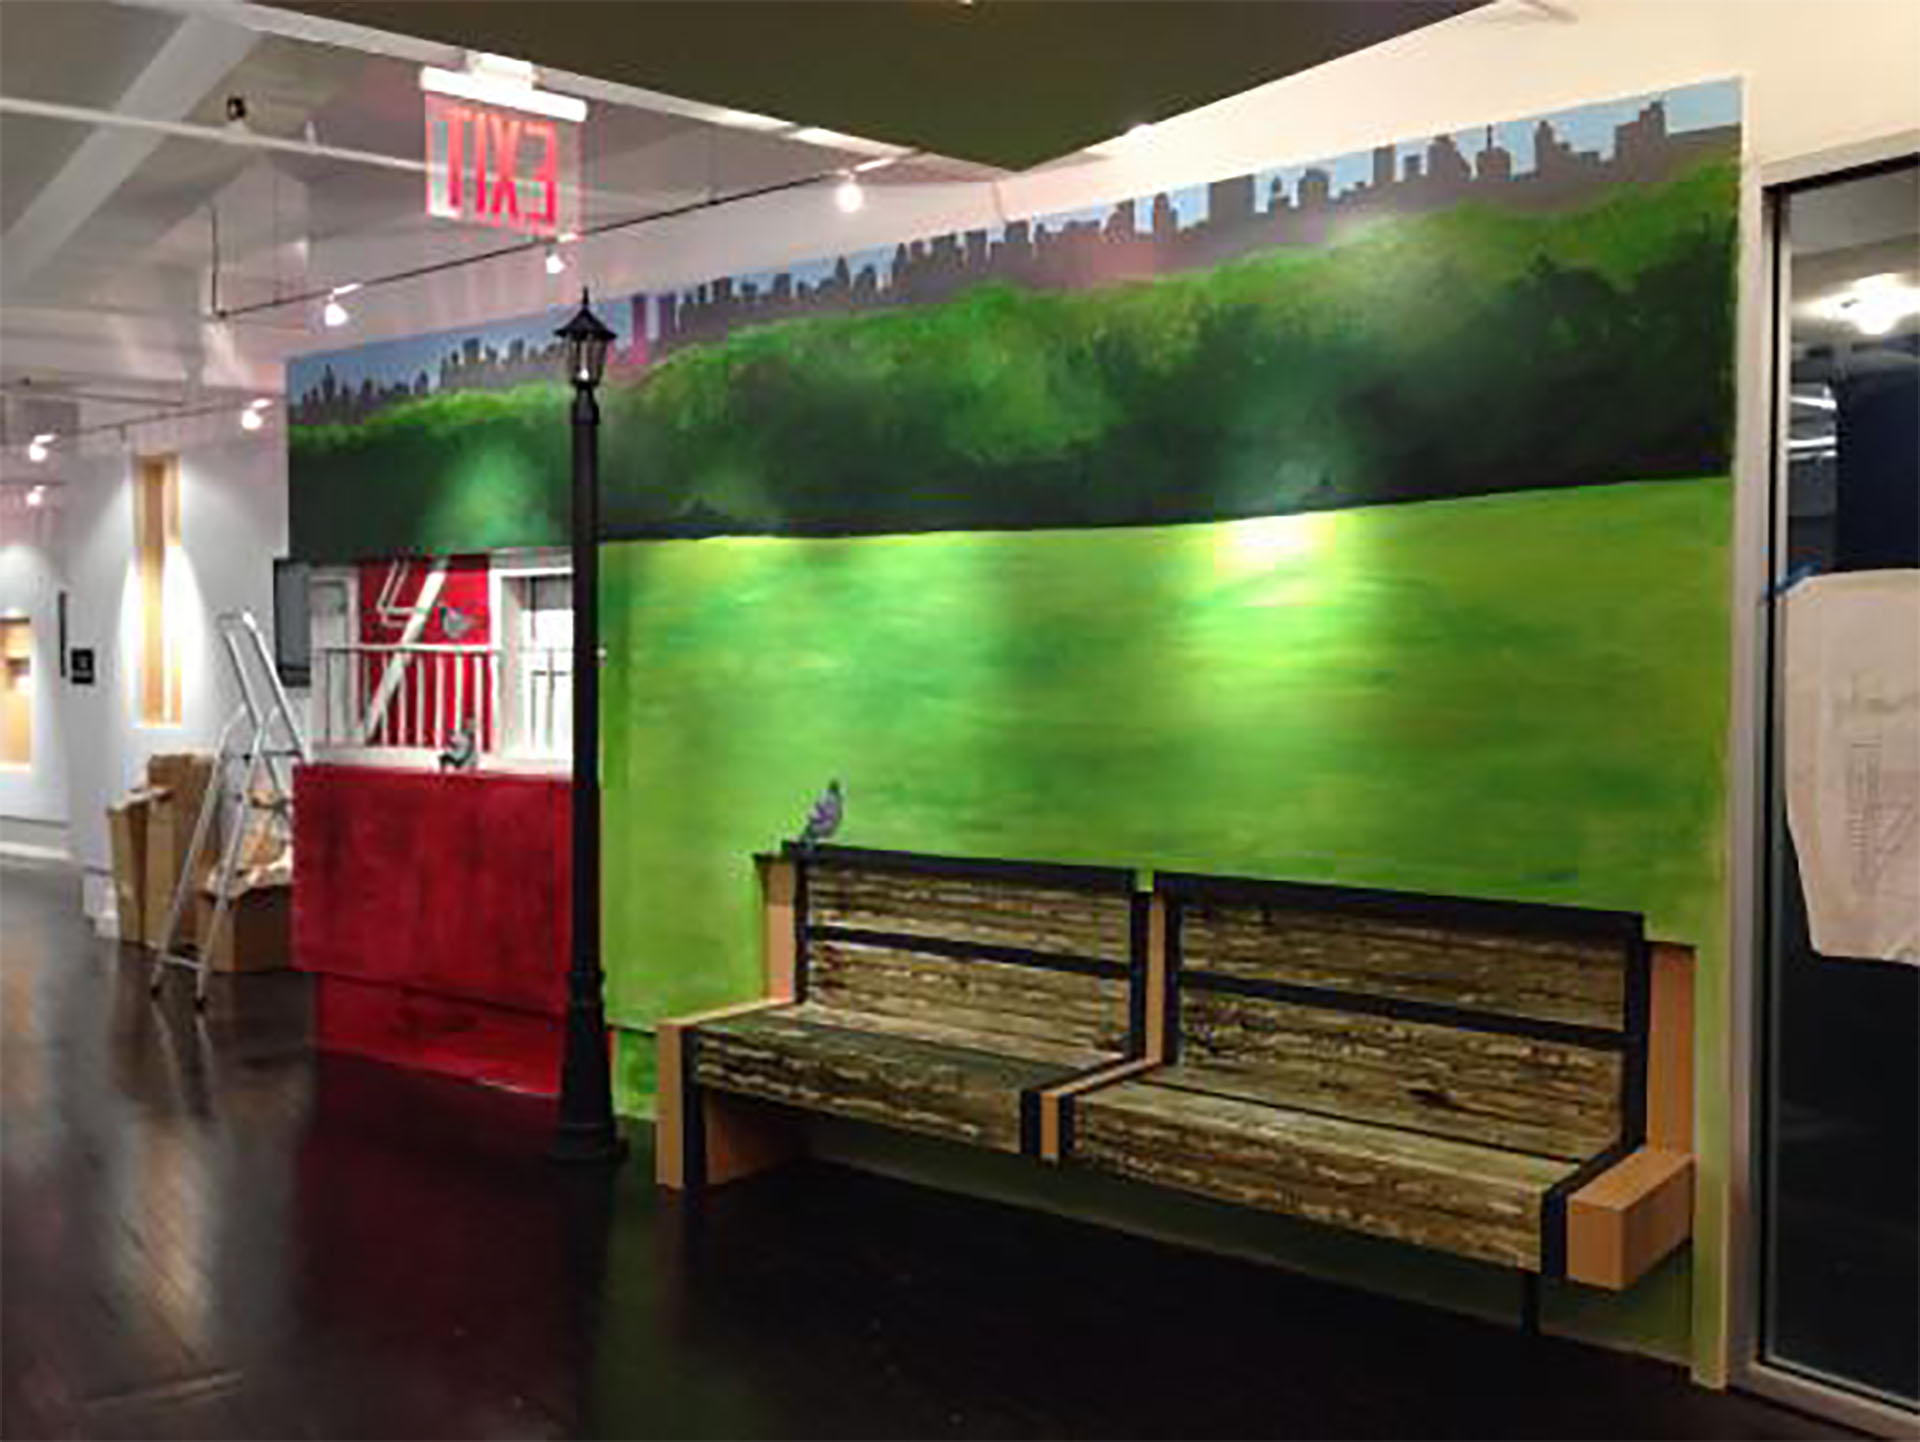 Office mural in Union Square, NYC.